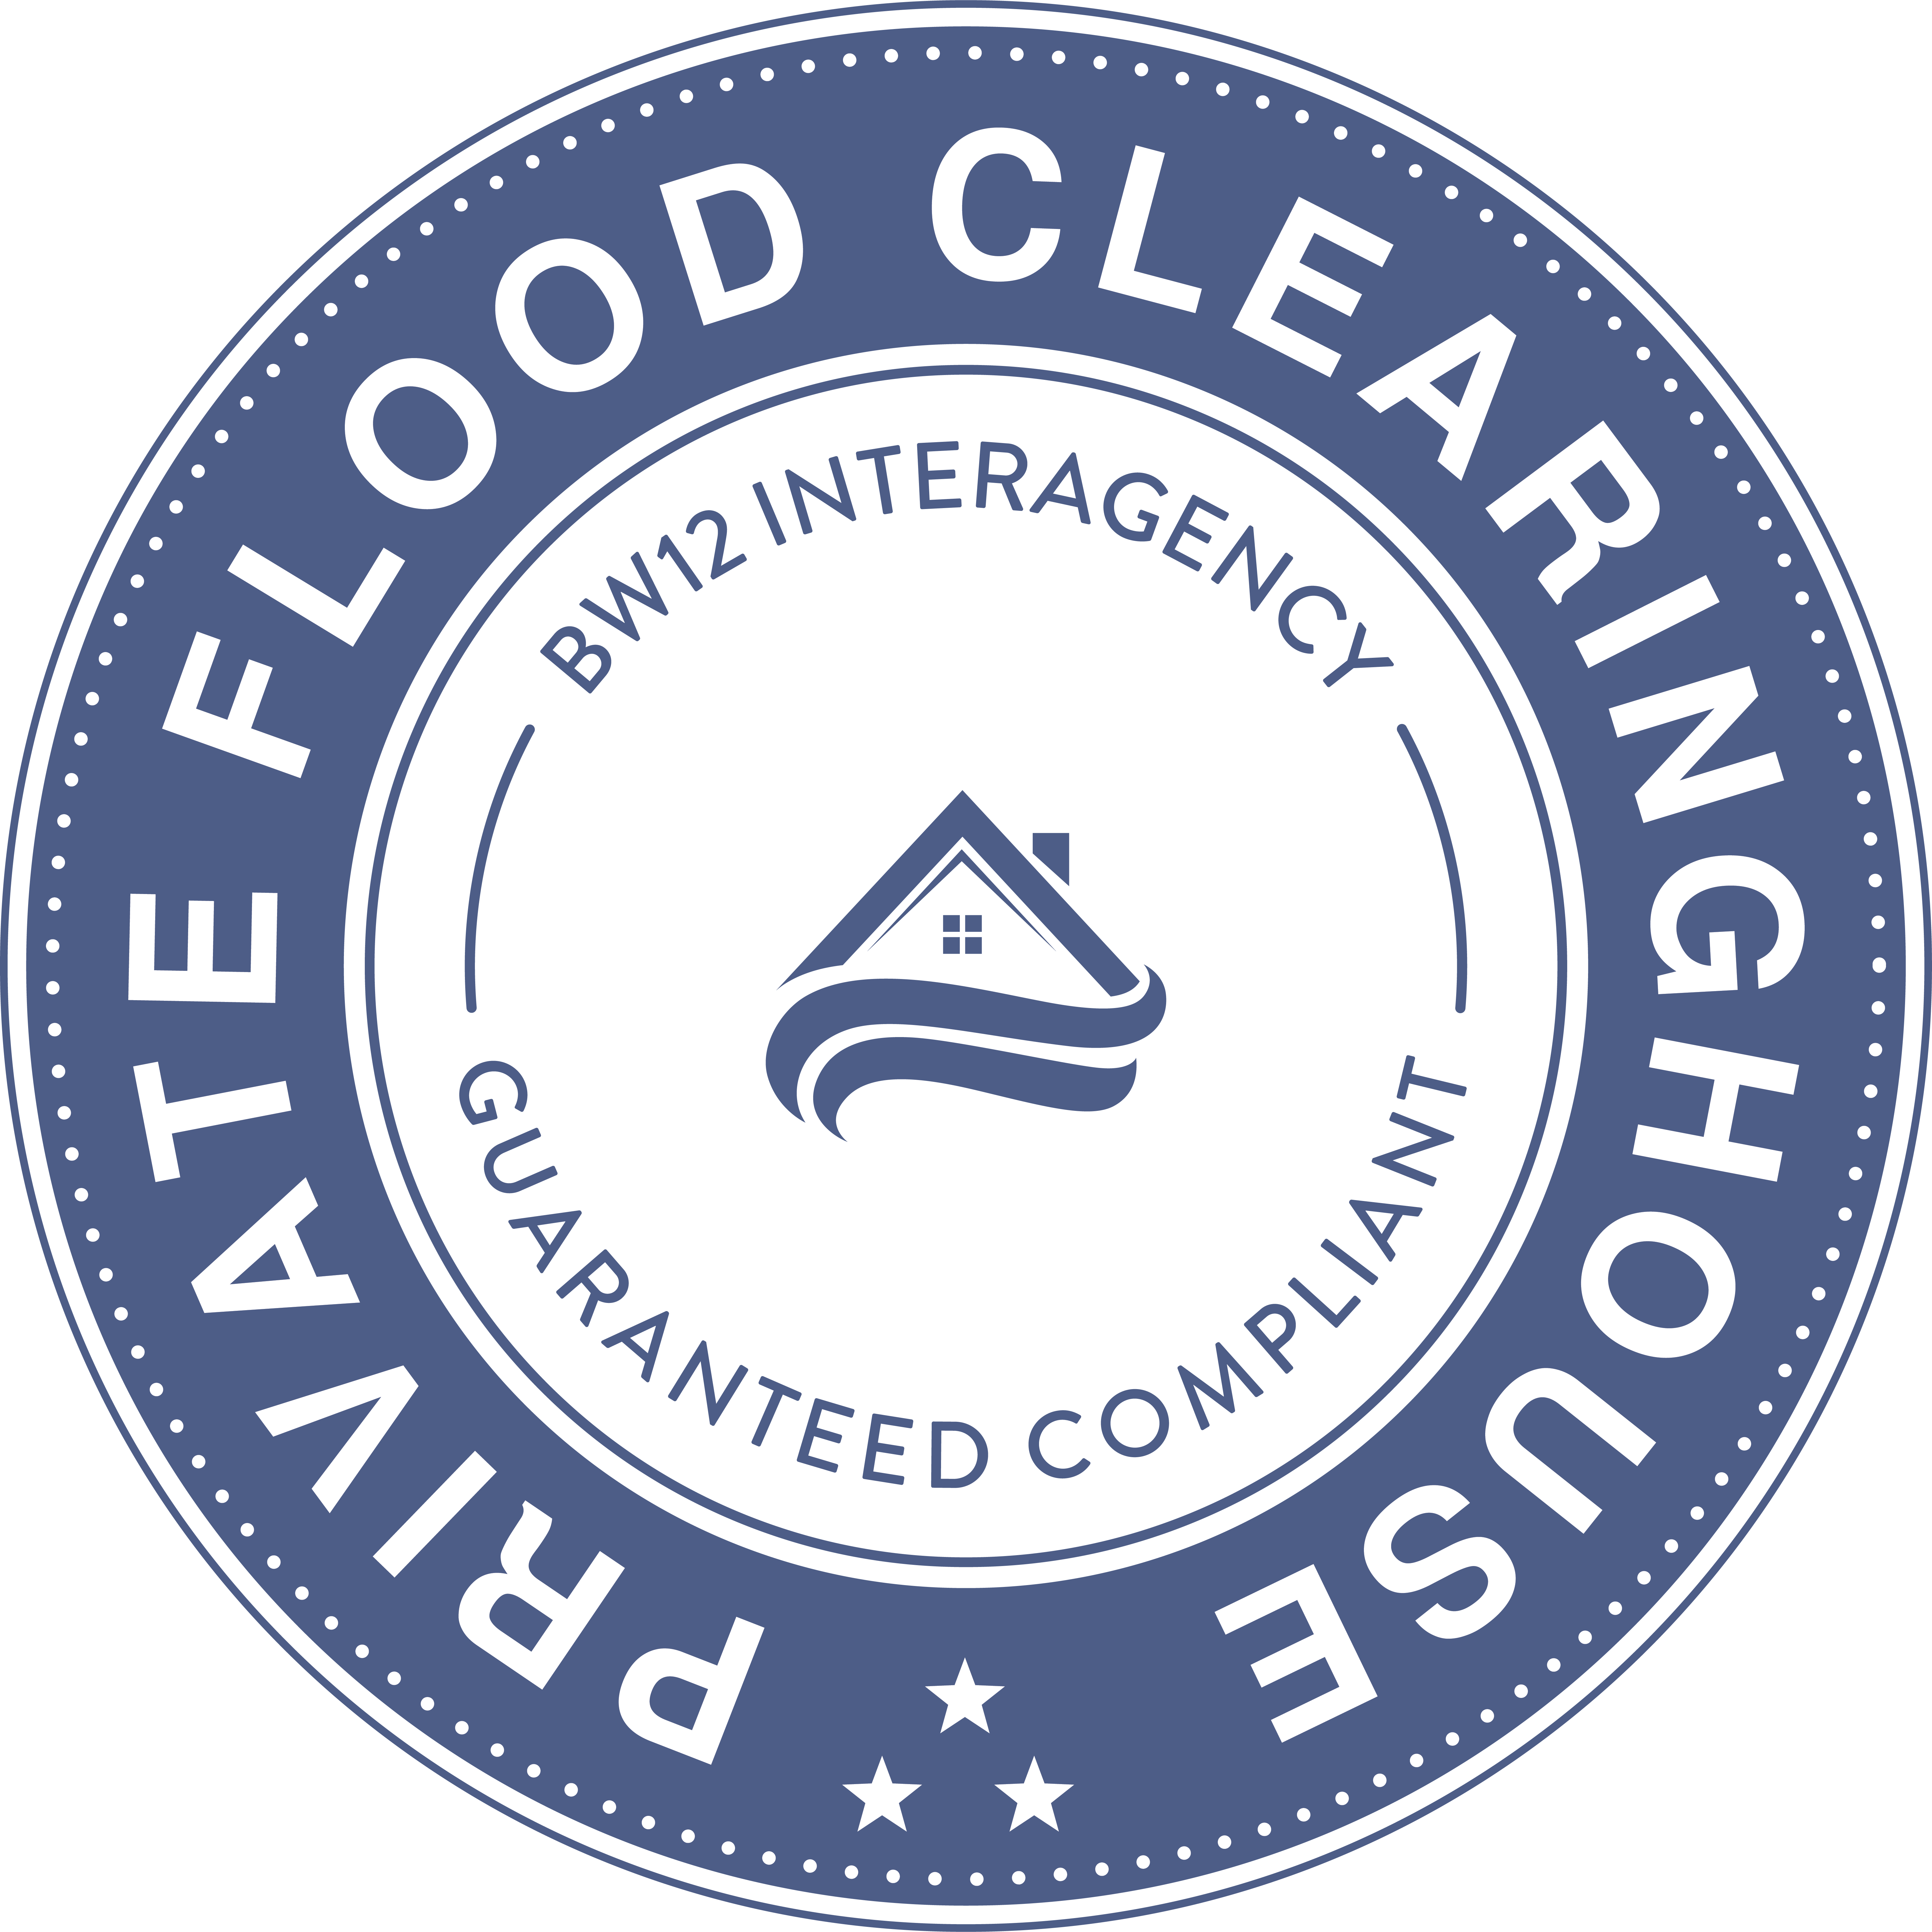 Private Flood Clearinghouse Seal